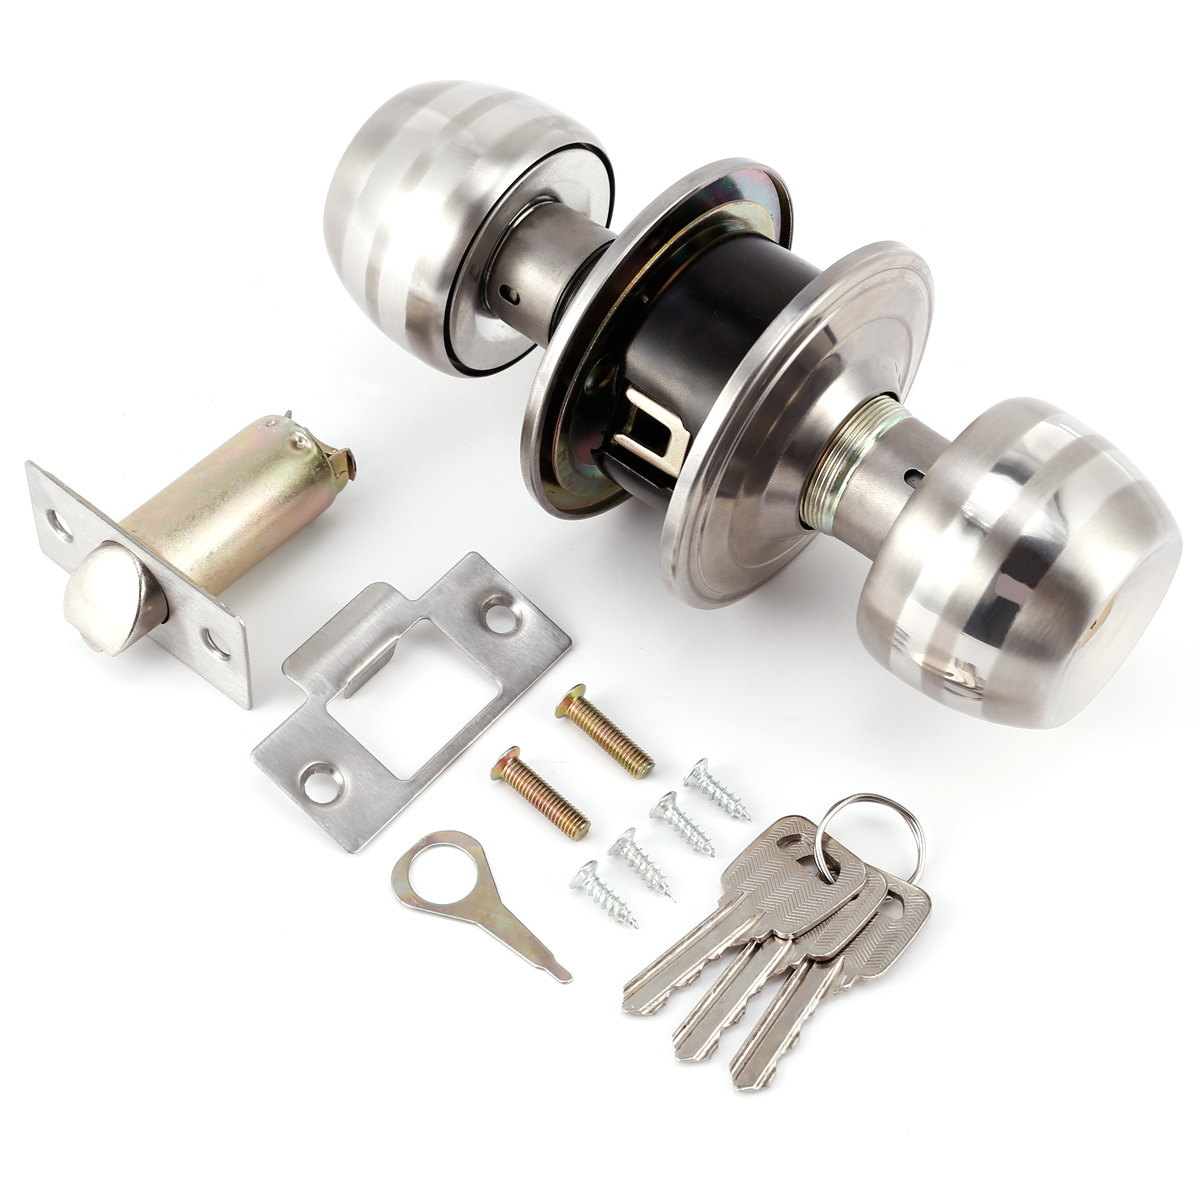 Entry Door Lock Sets Stainless Steel Keyed Alike Exterior Mortise Key Securit